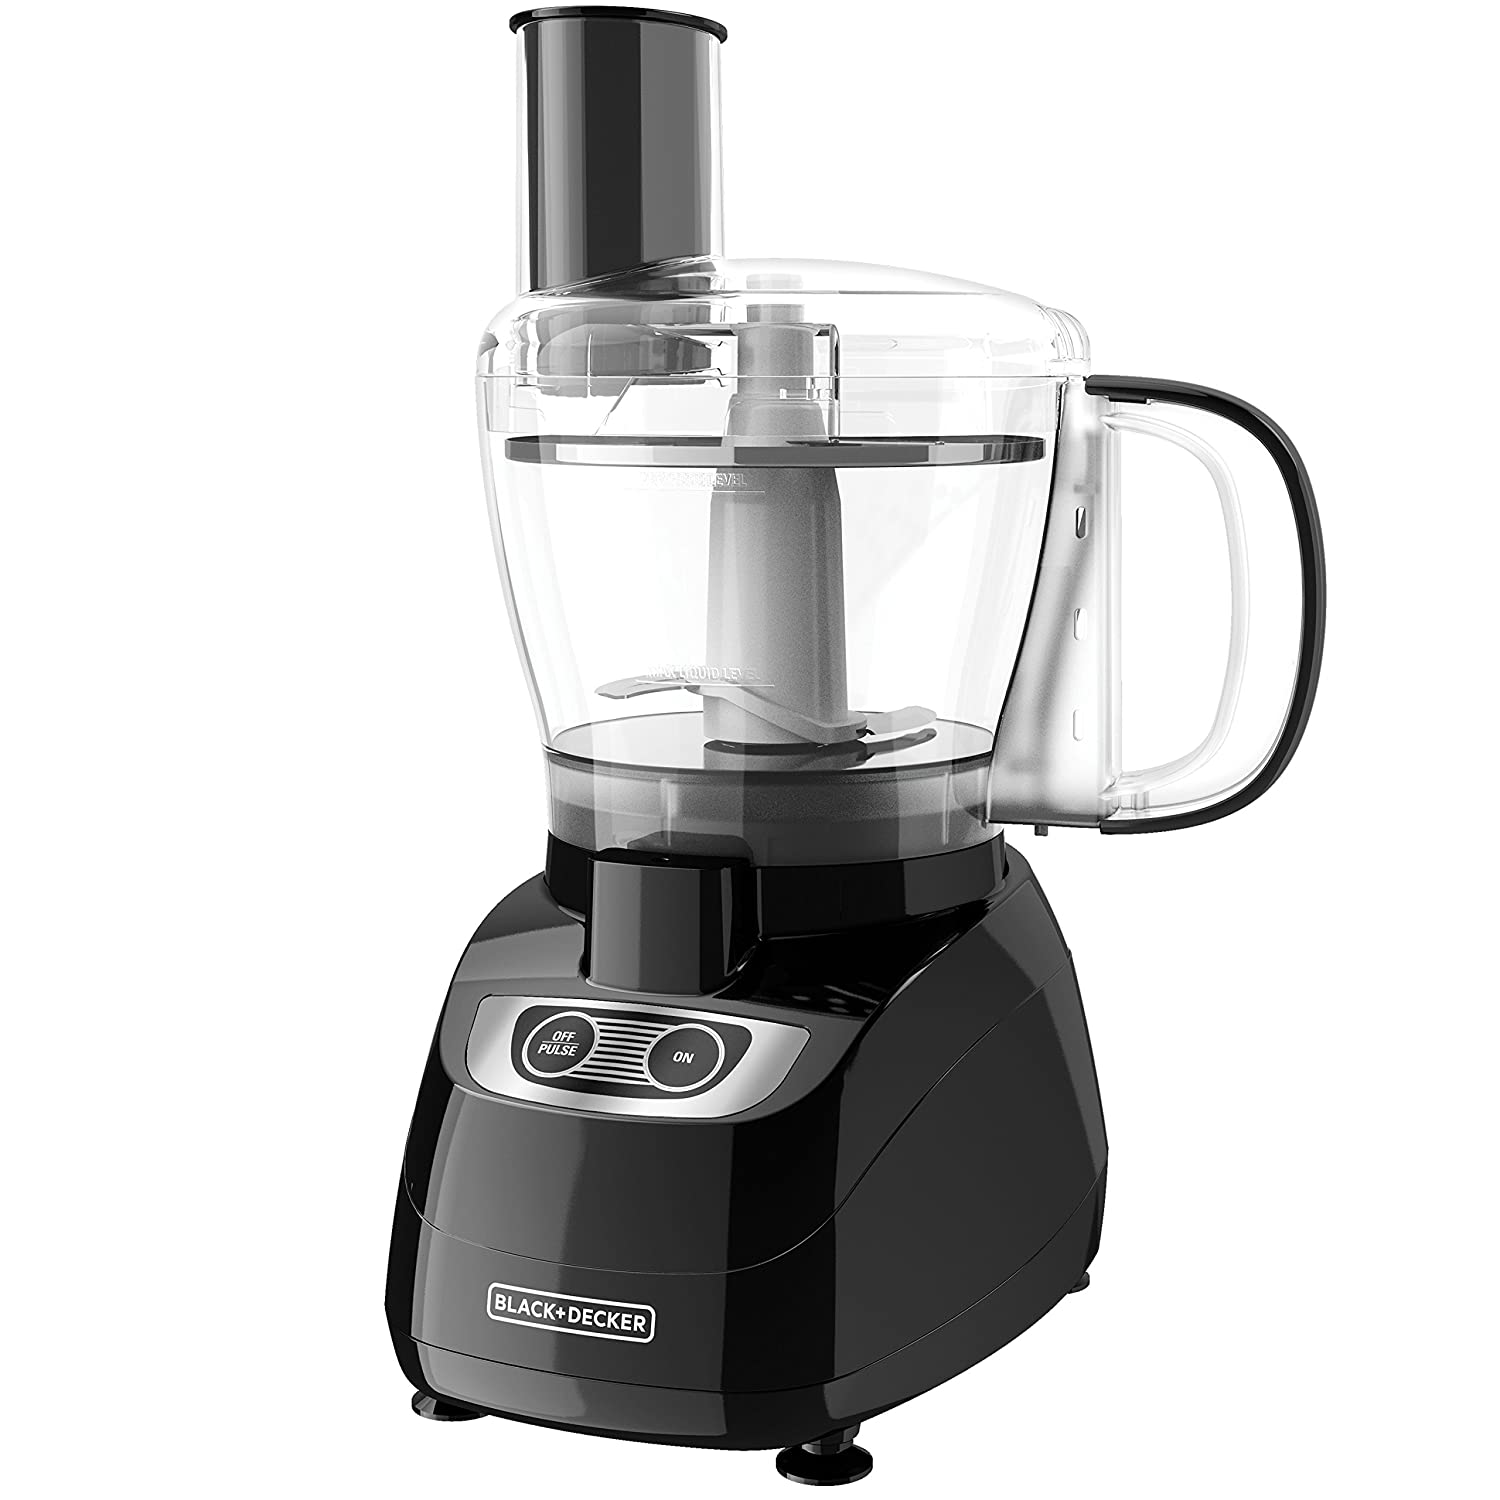 Black & Decker Food Processor, 8-Cup Spectrum Brands FP1700B